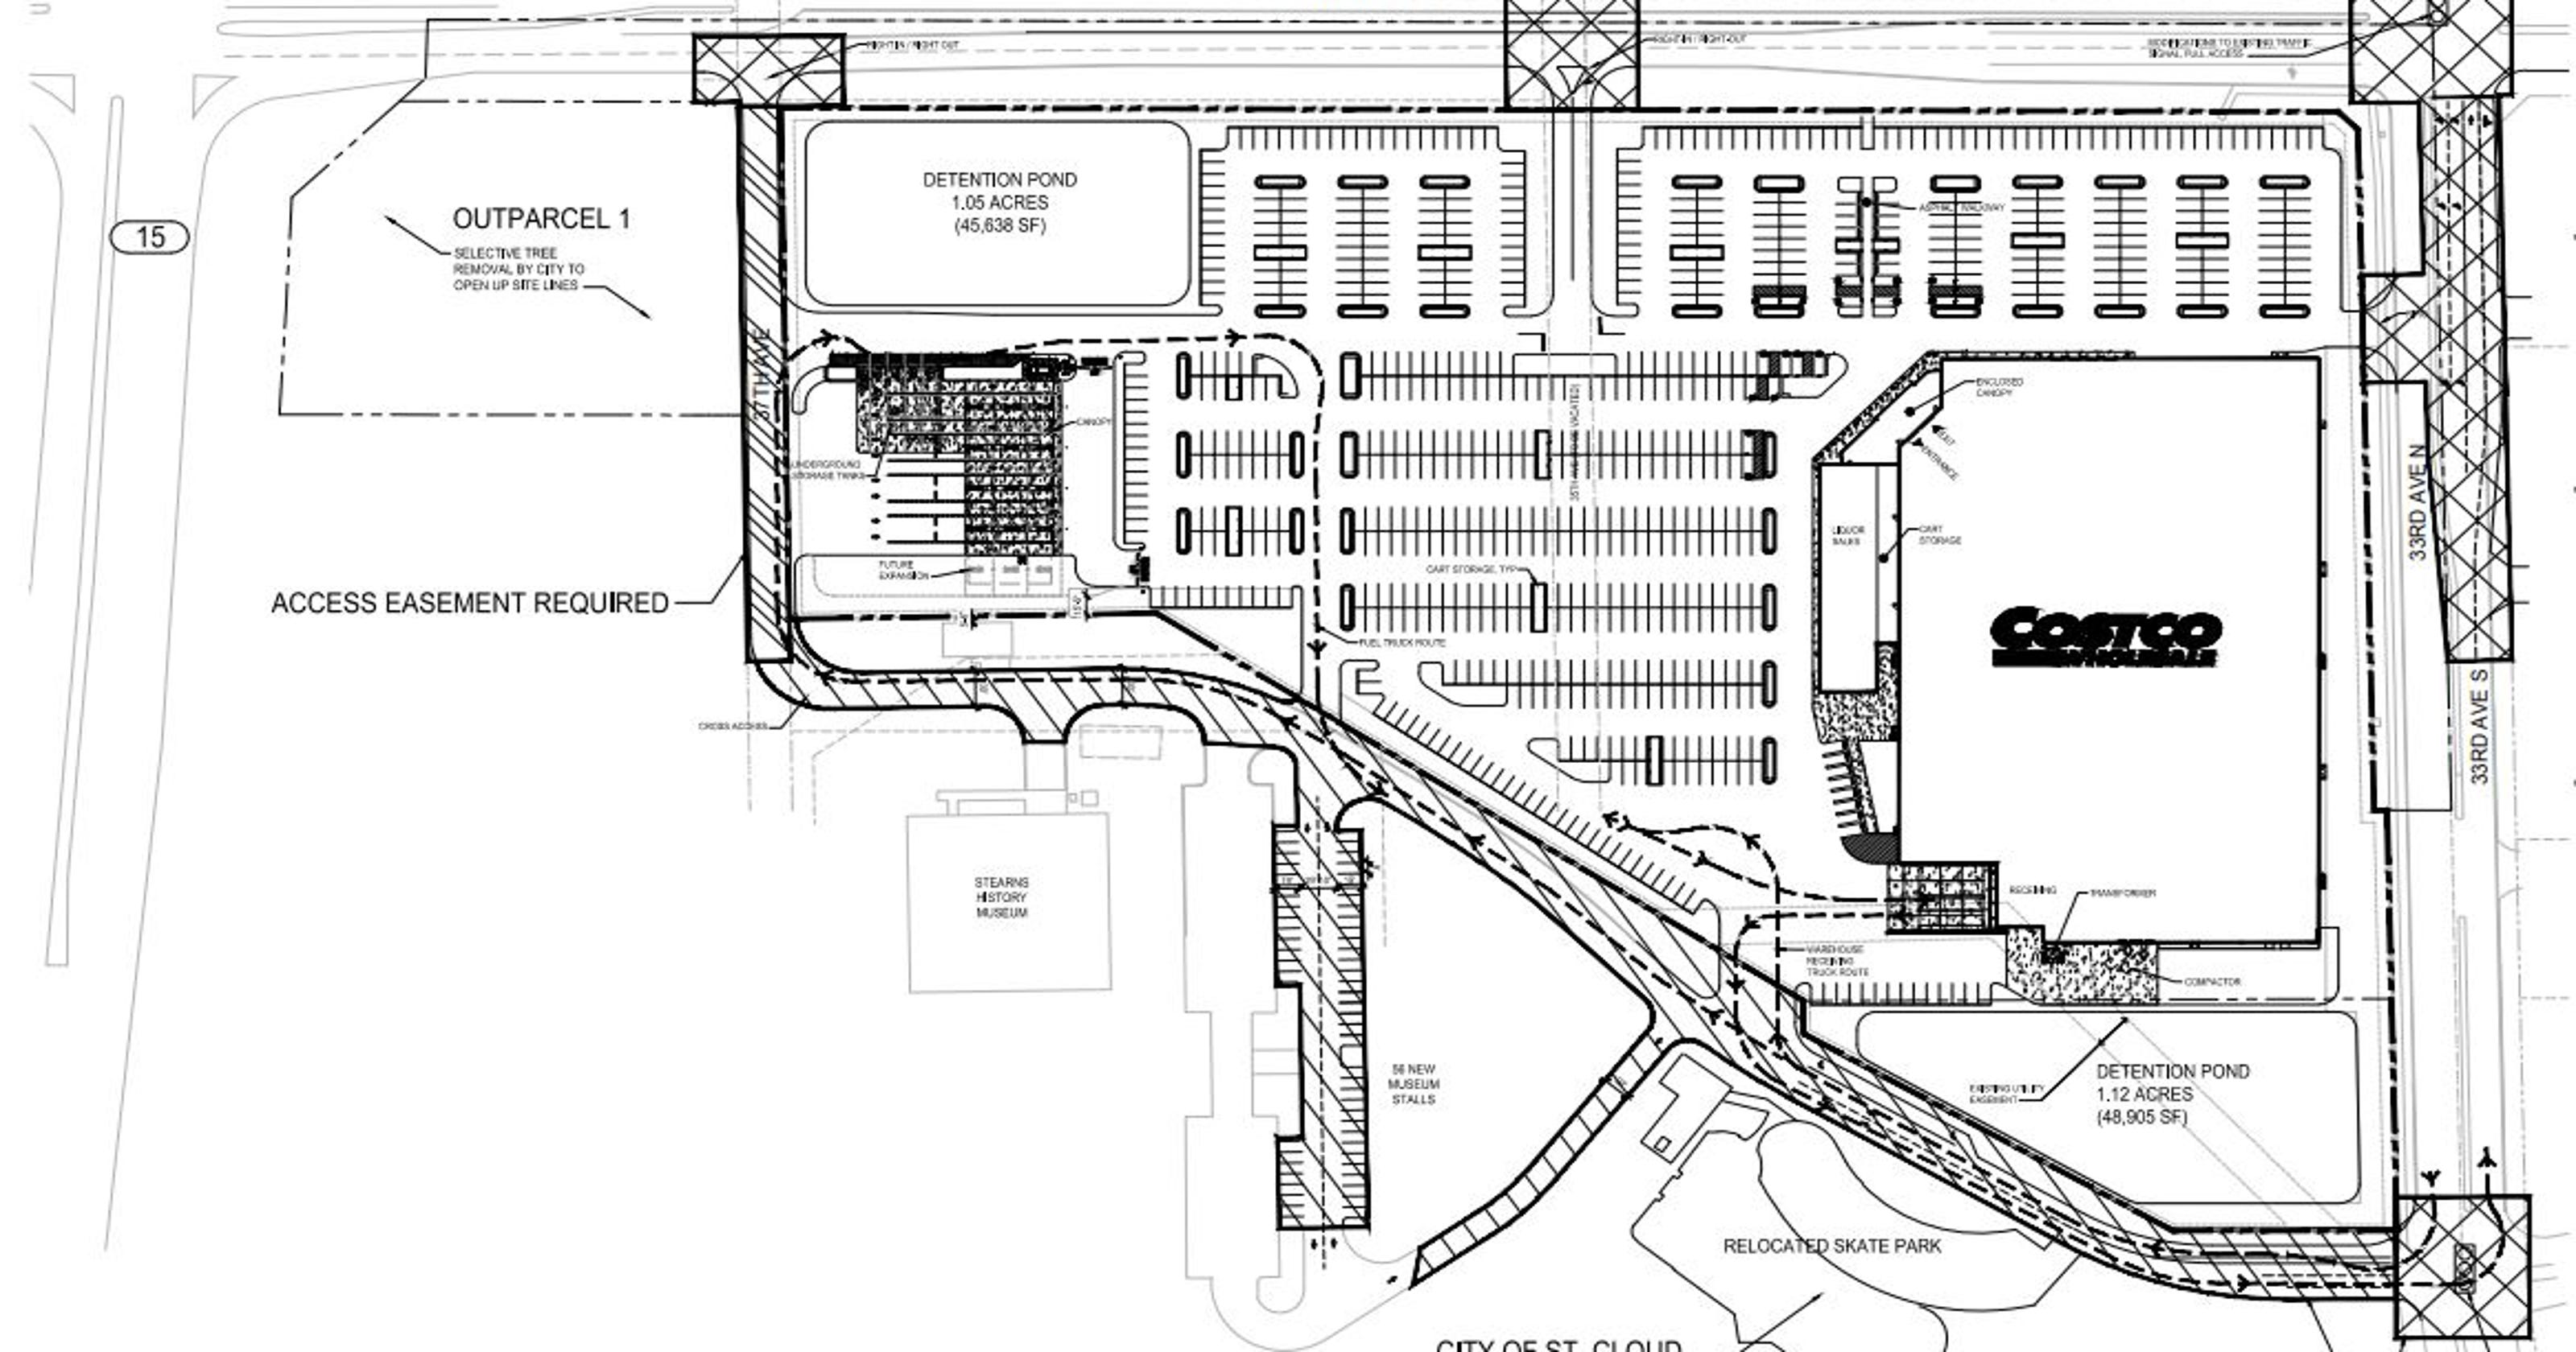 Costco offers St. Cloud $3.53M to build at Heritage Park